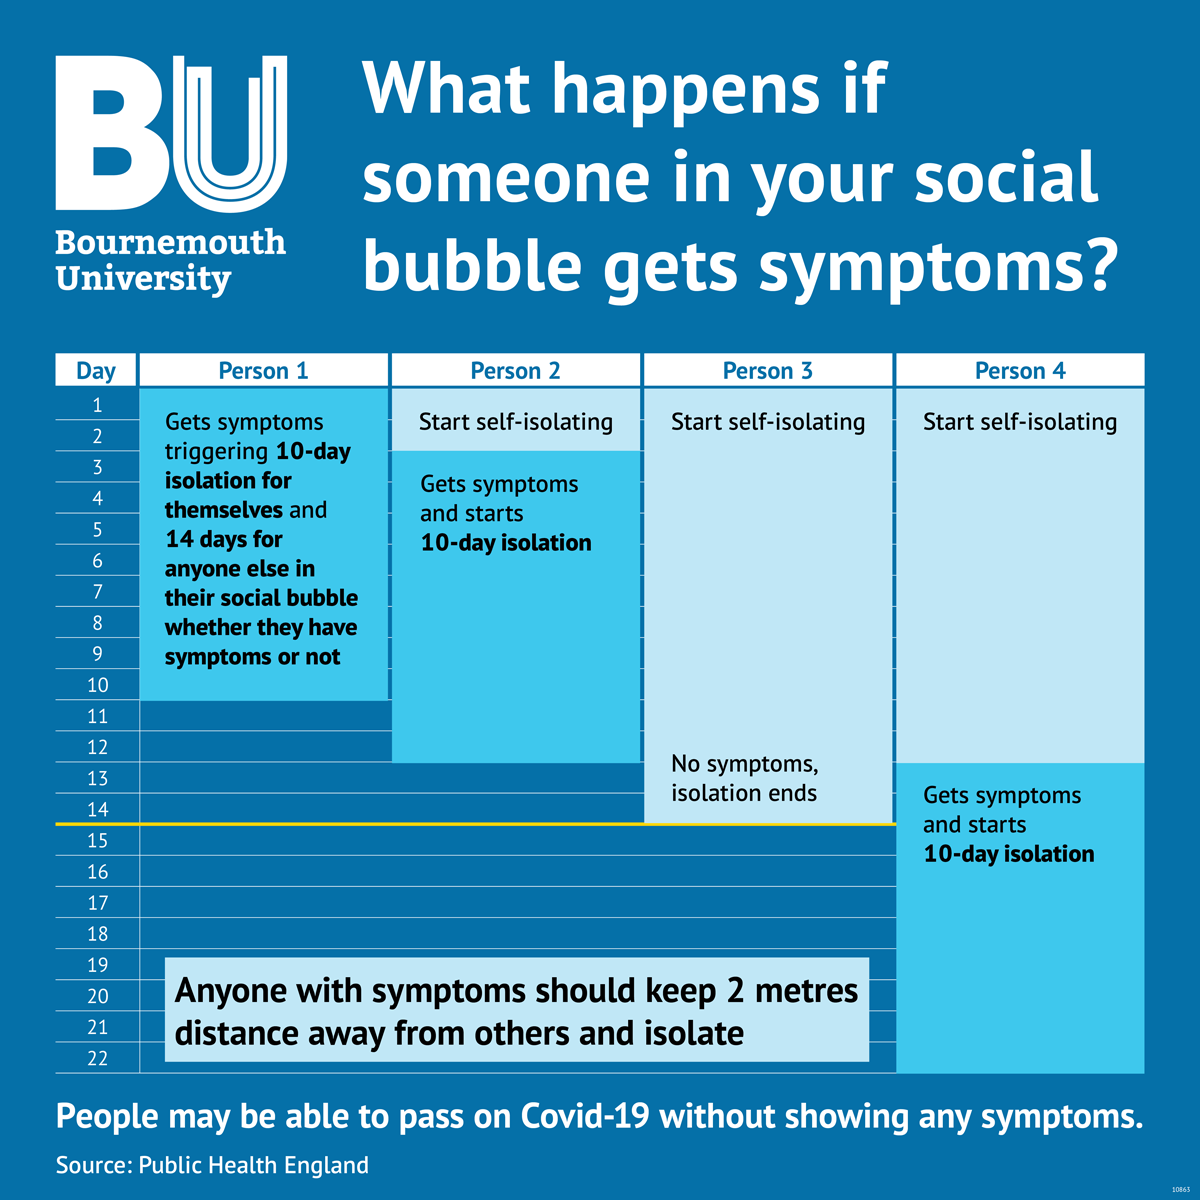 An infographic with details of steps to take if someone in your social bubble has Covid-19 symptoms